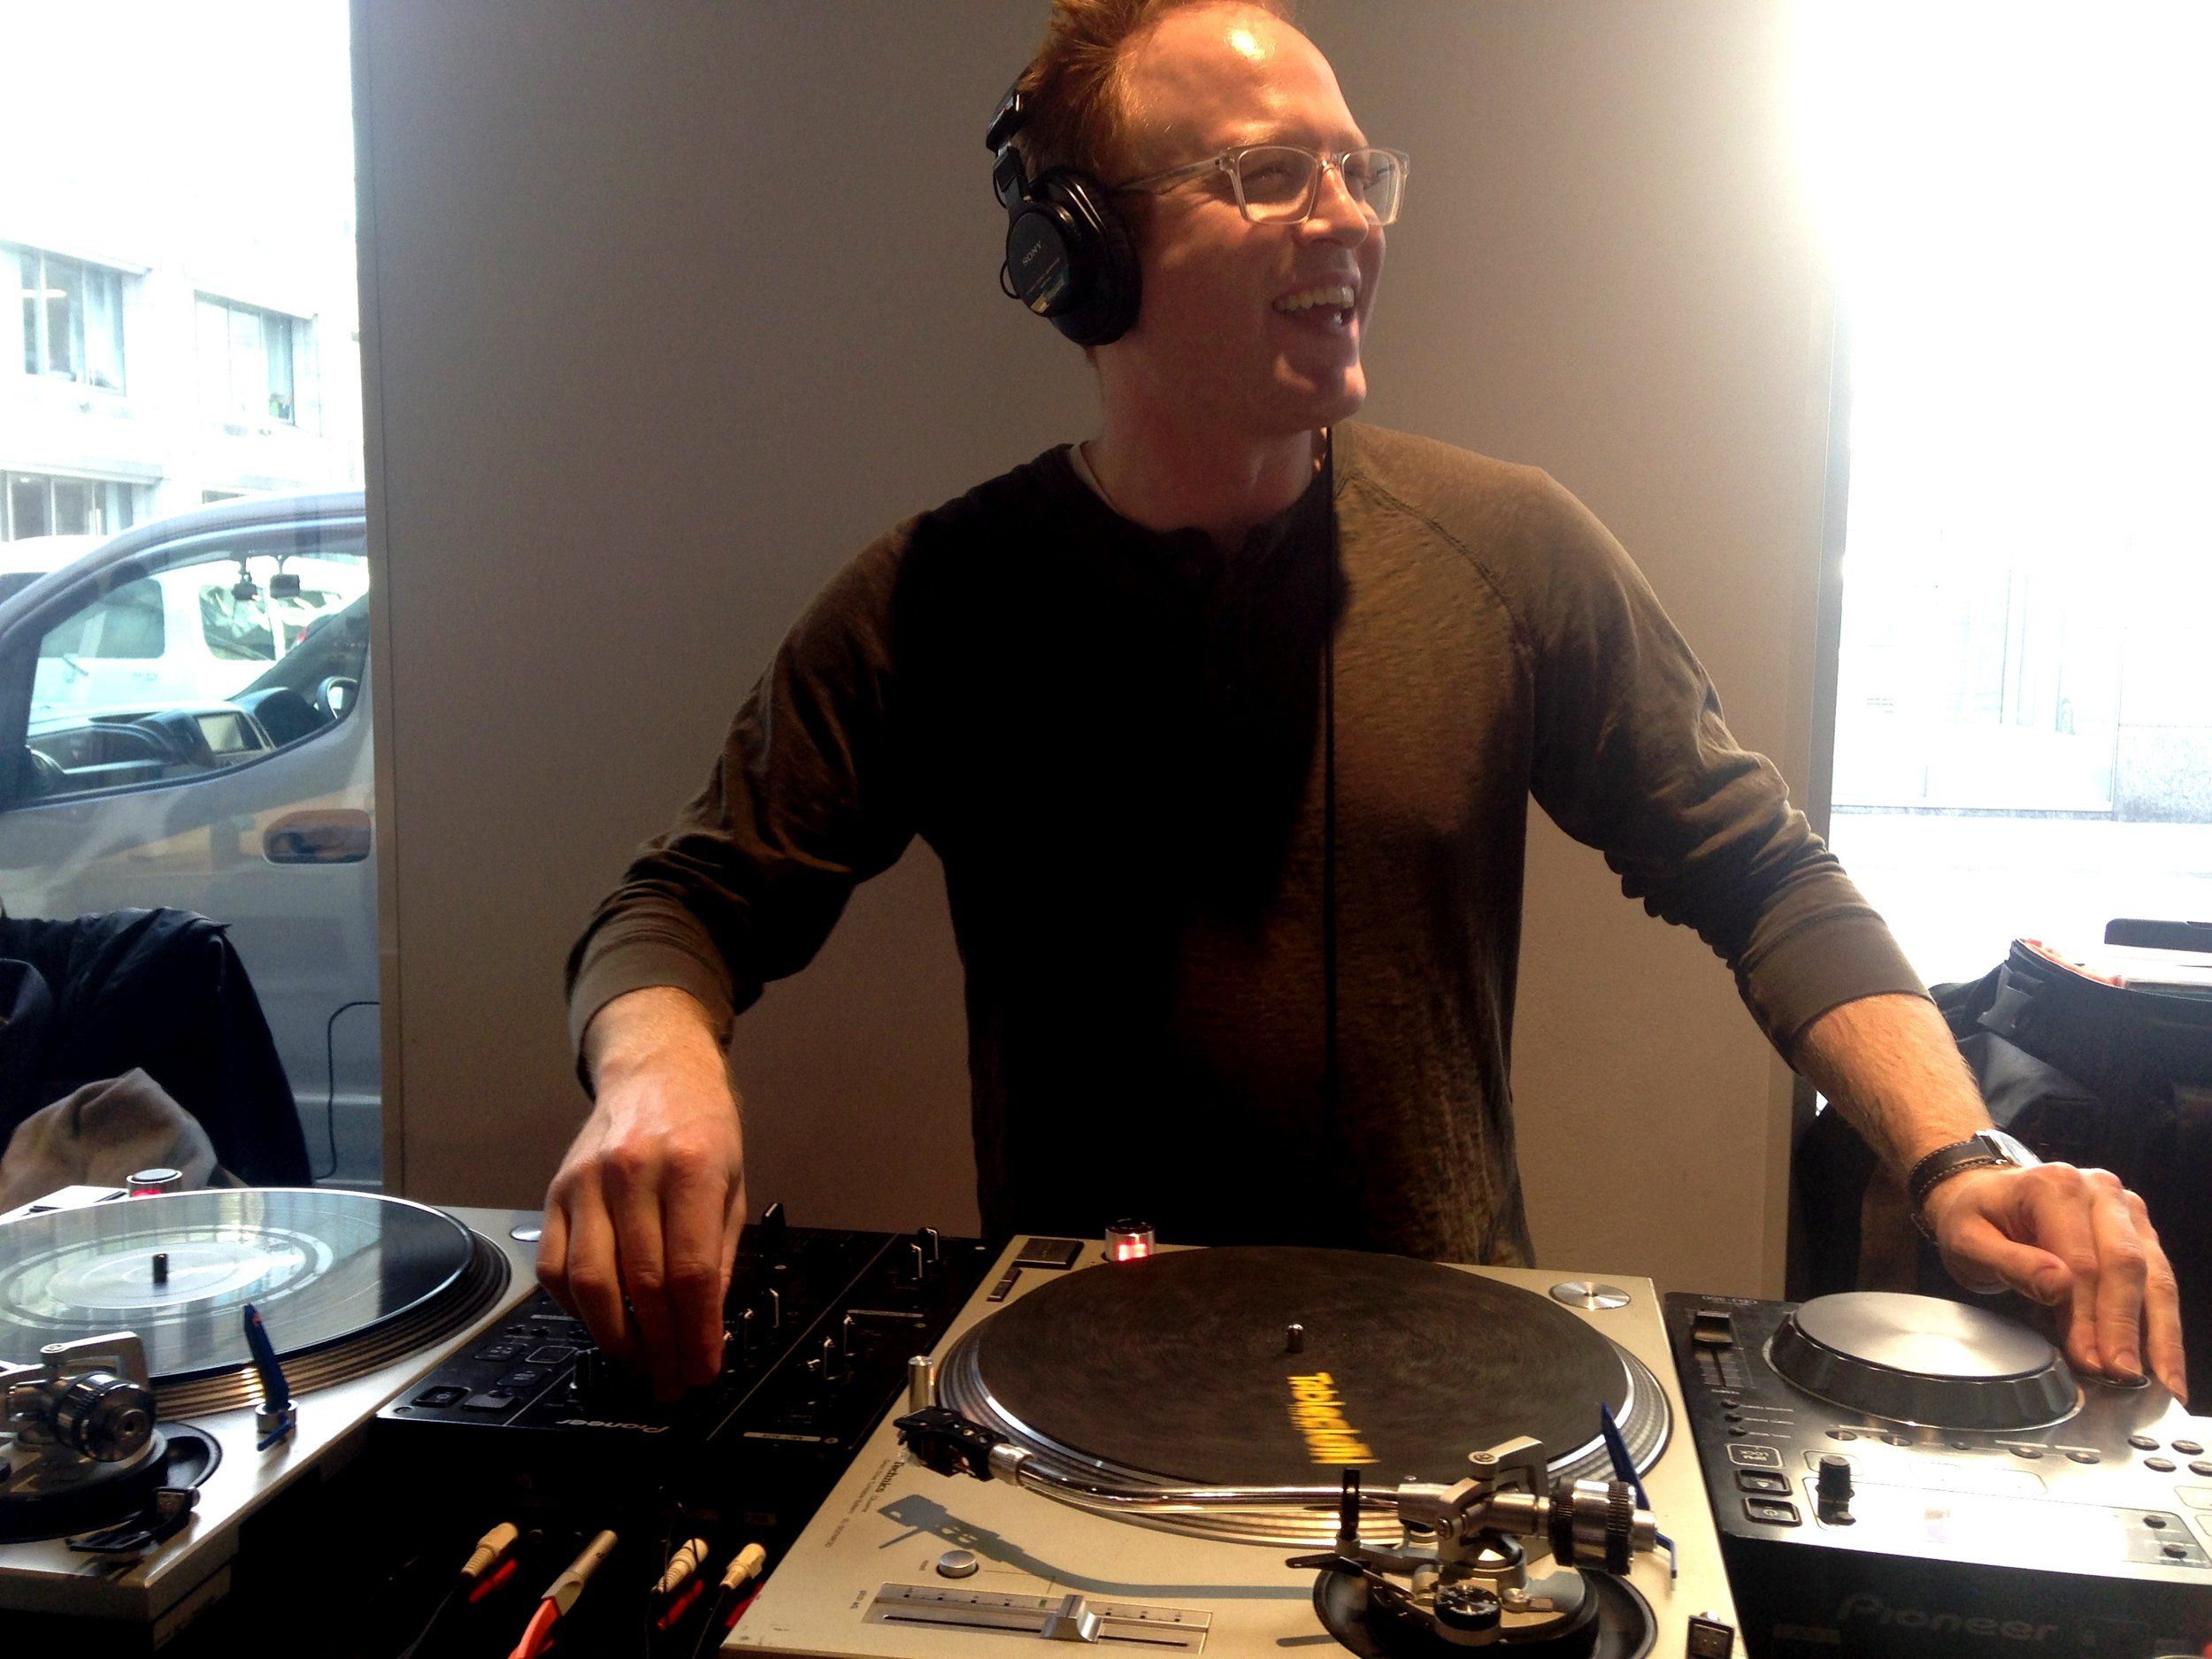 THIS guy is the most fun ;) DJ Jimbo brightening up the room with all sorts of great tunes.